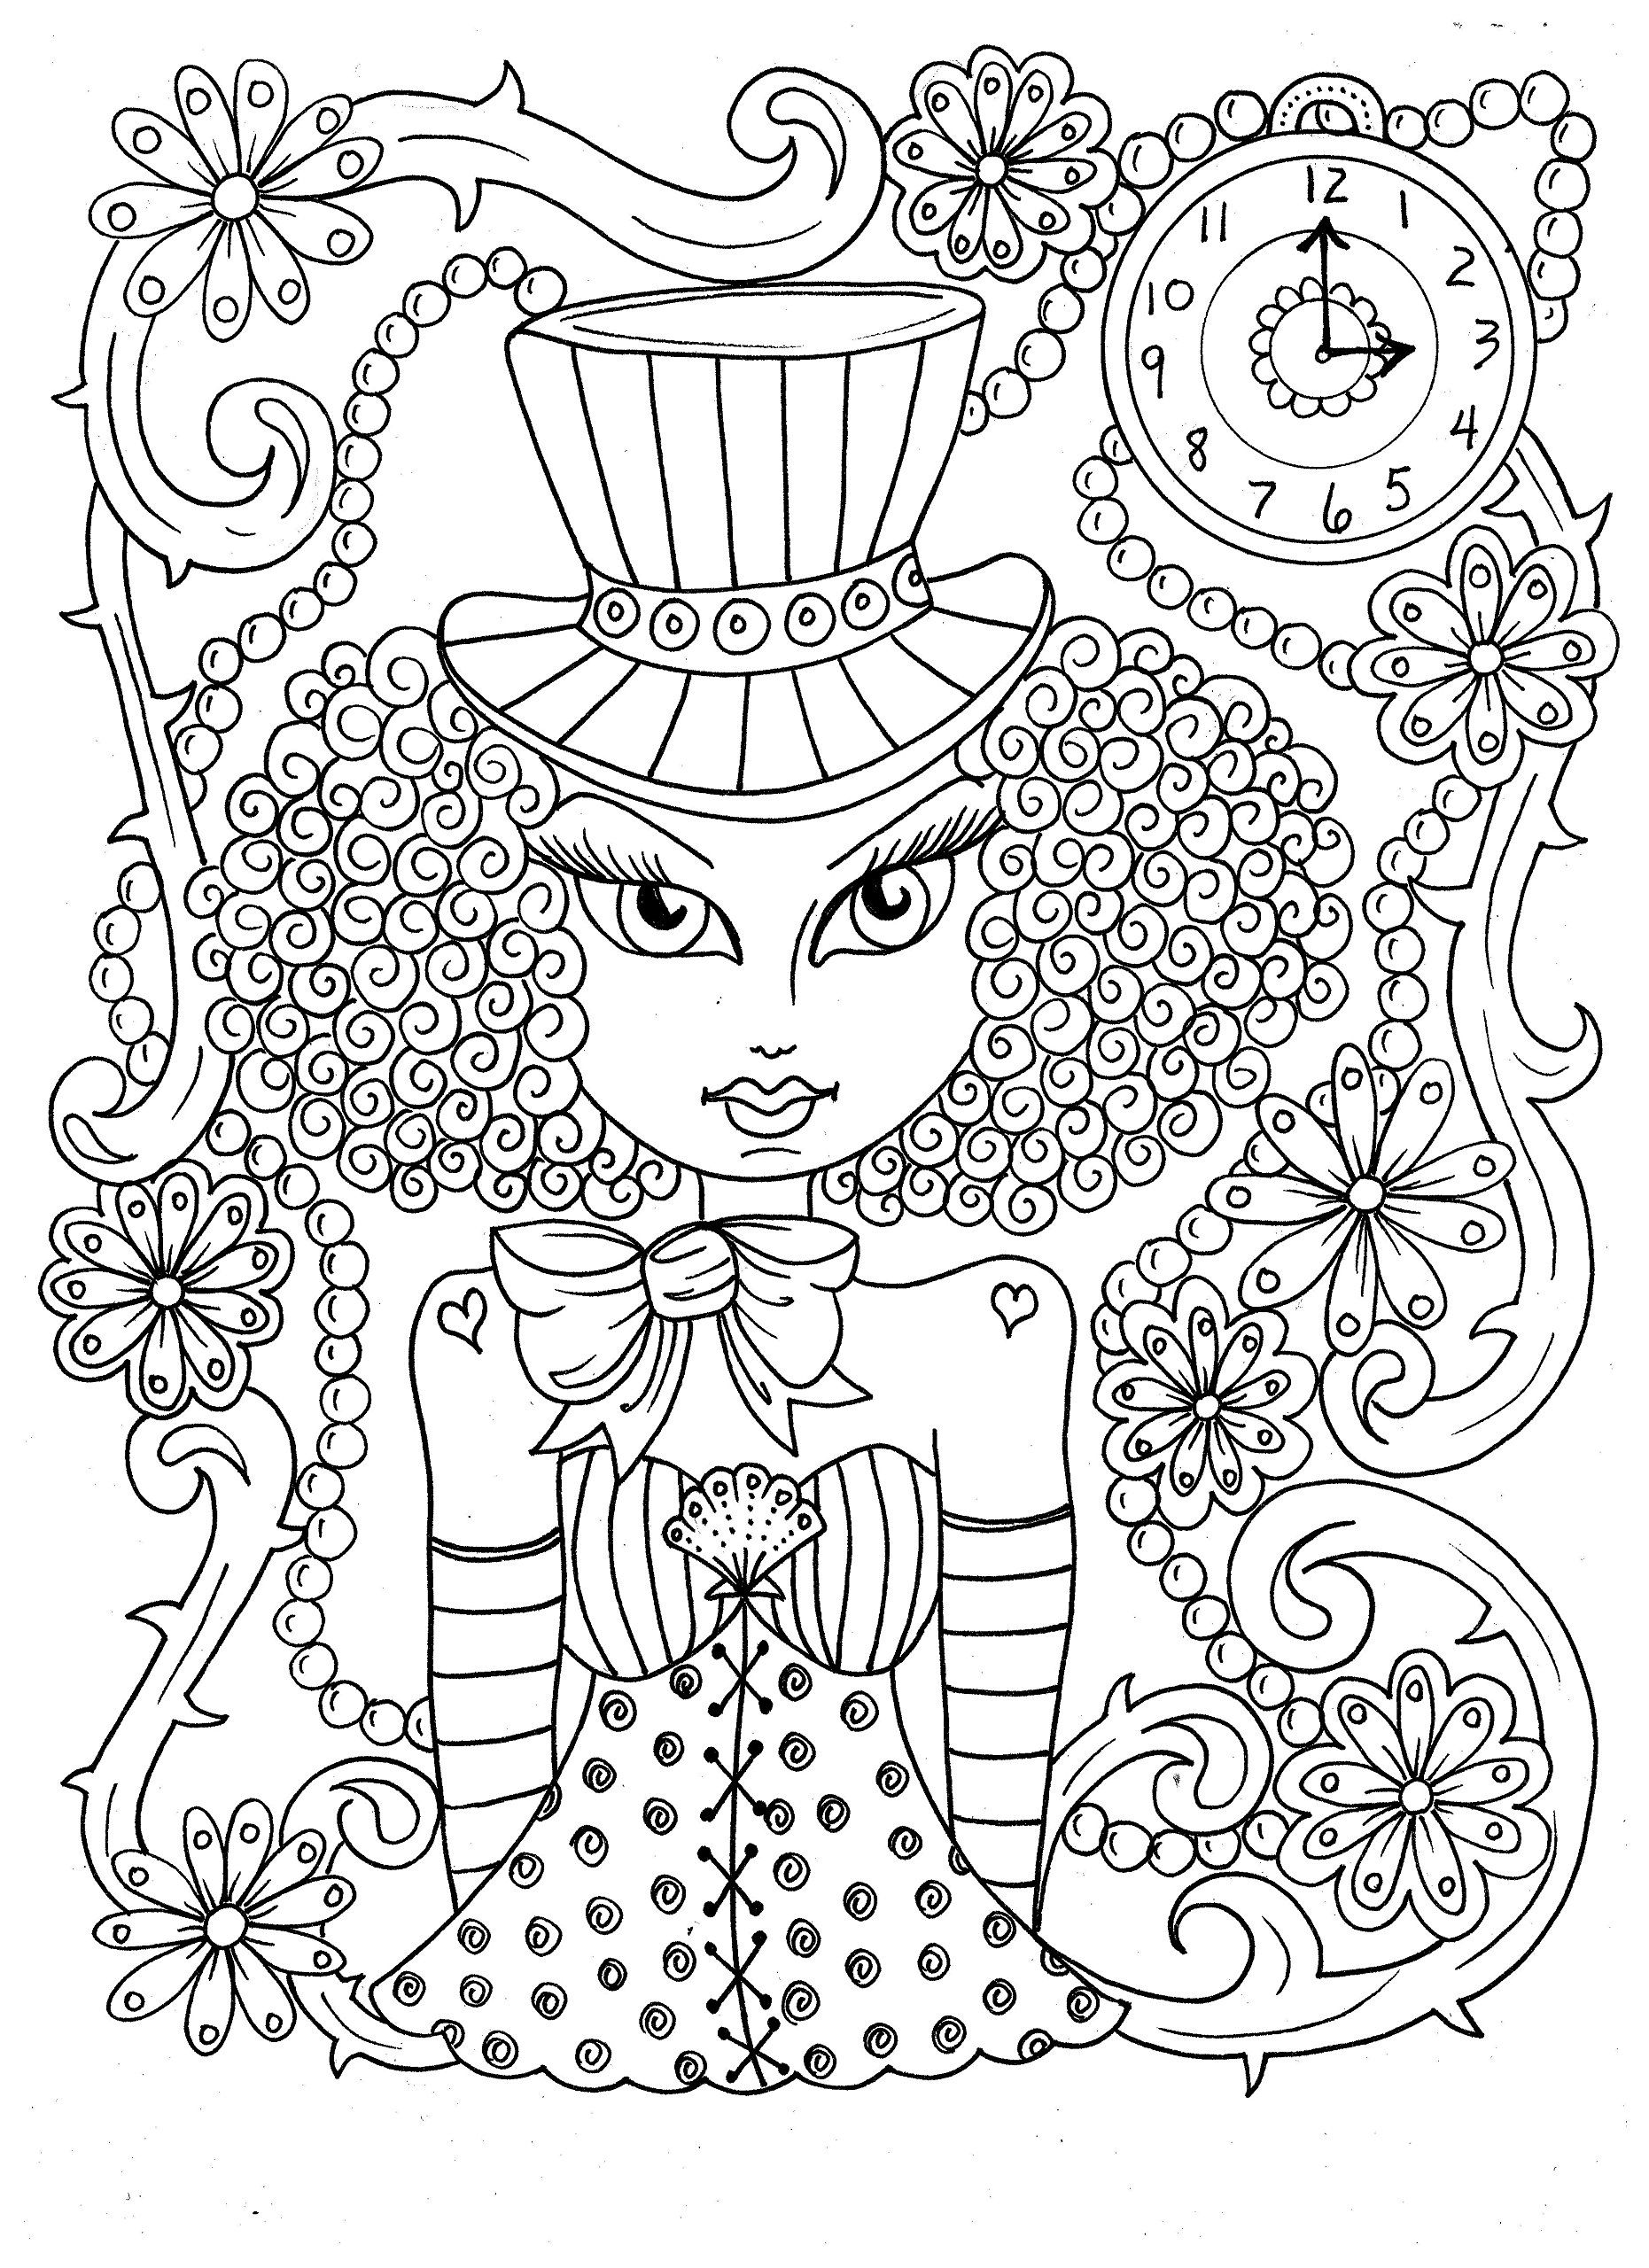 Steampunk girls cute and funky coloring fun for all ages deborah